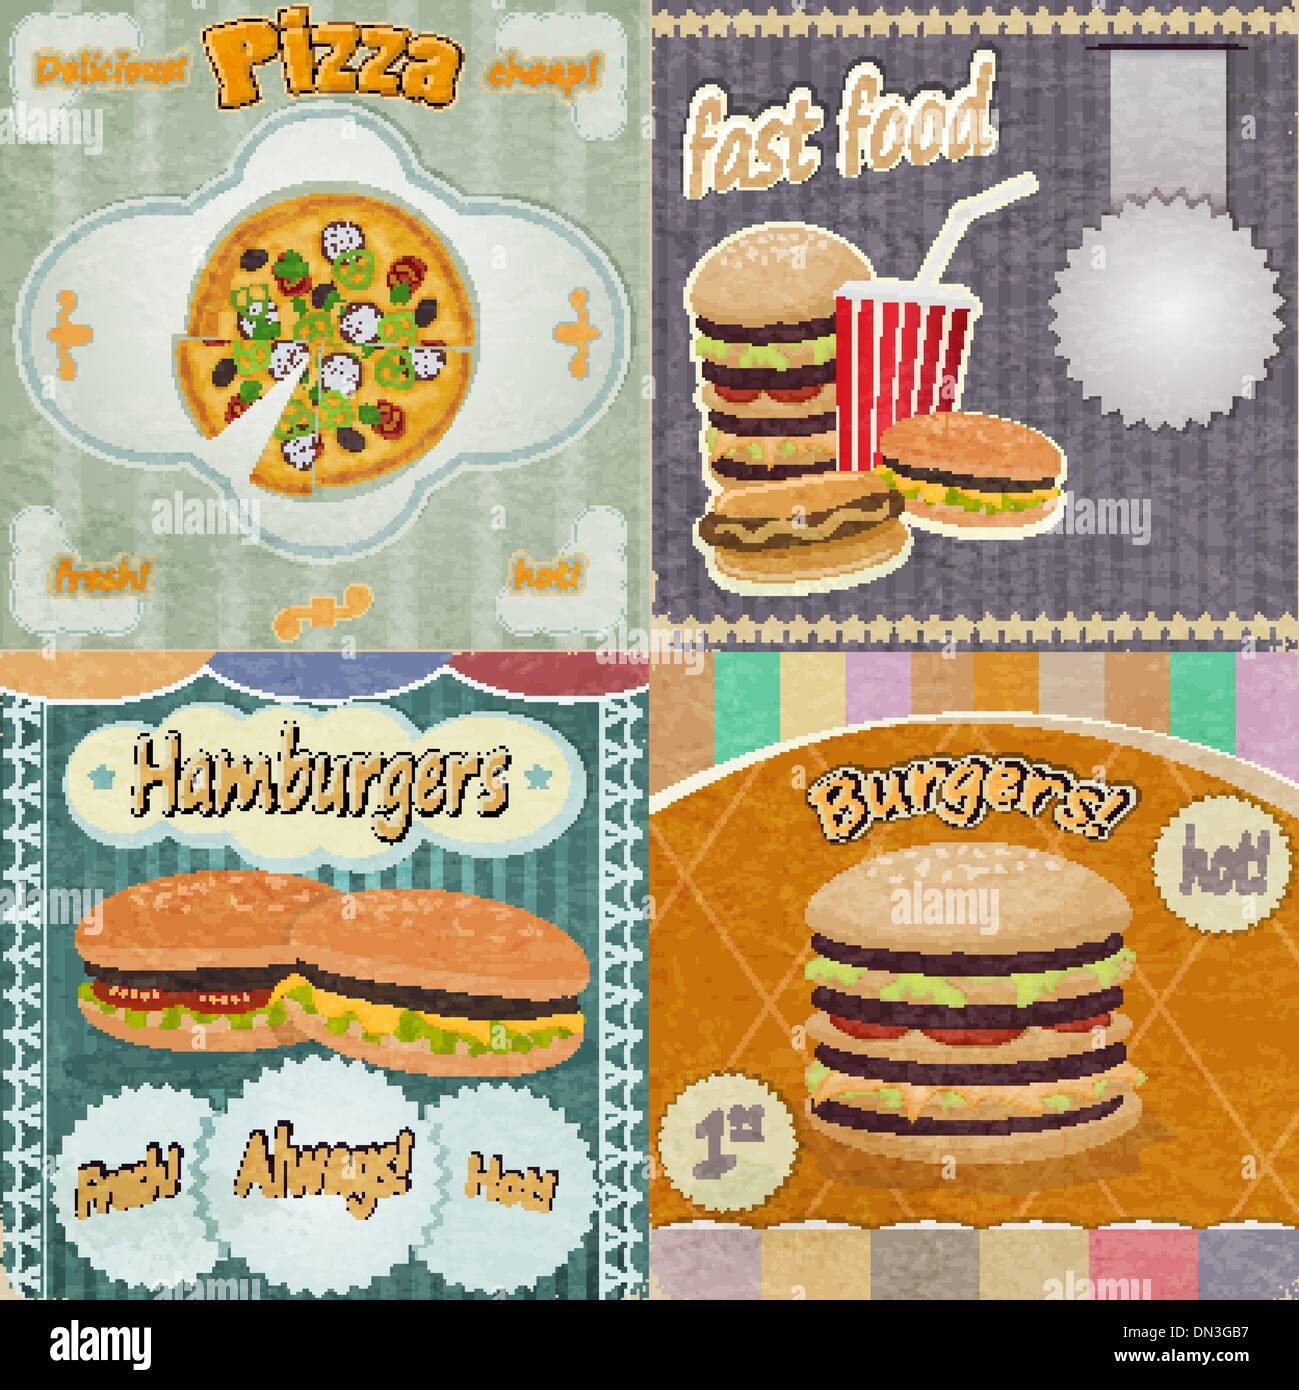 Set of vintage cards - fast food ads - with the image food